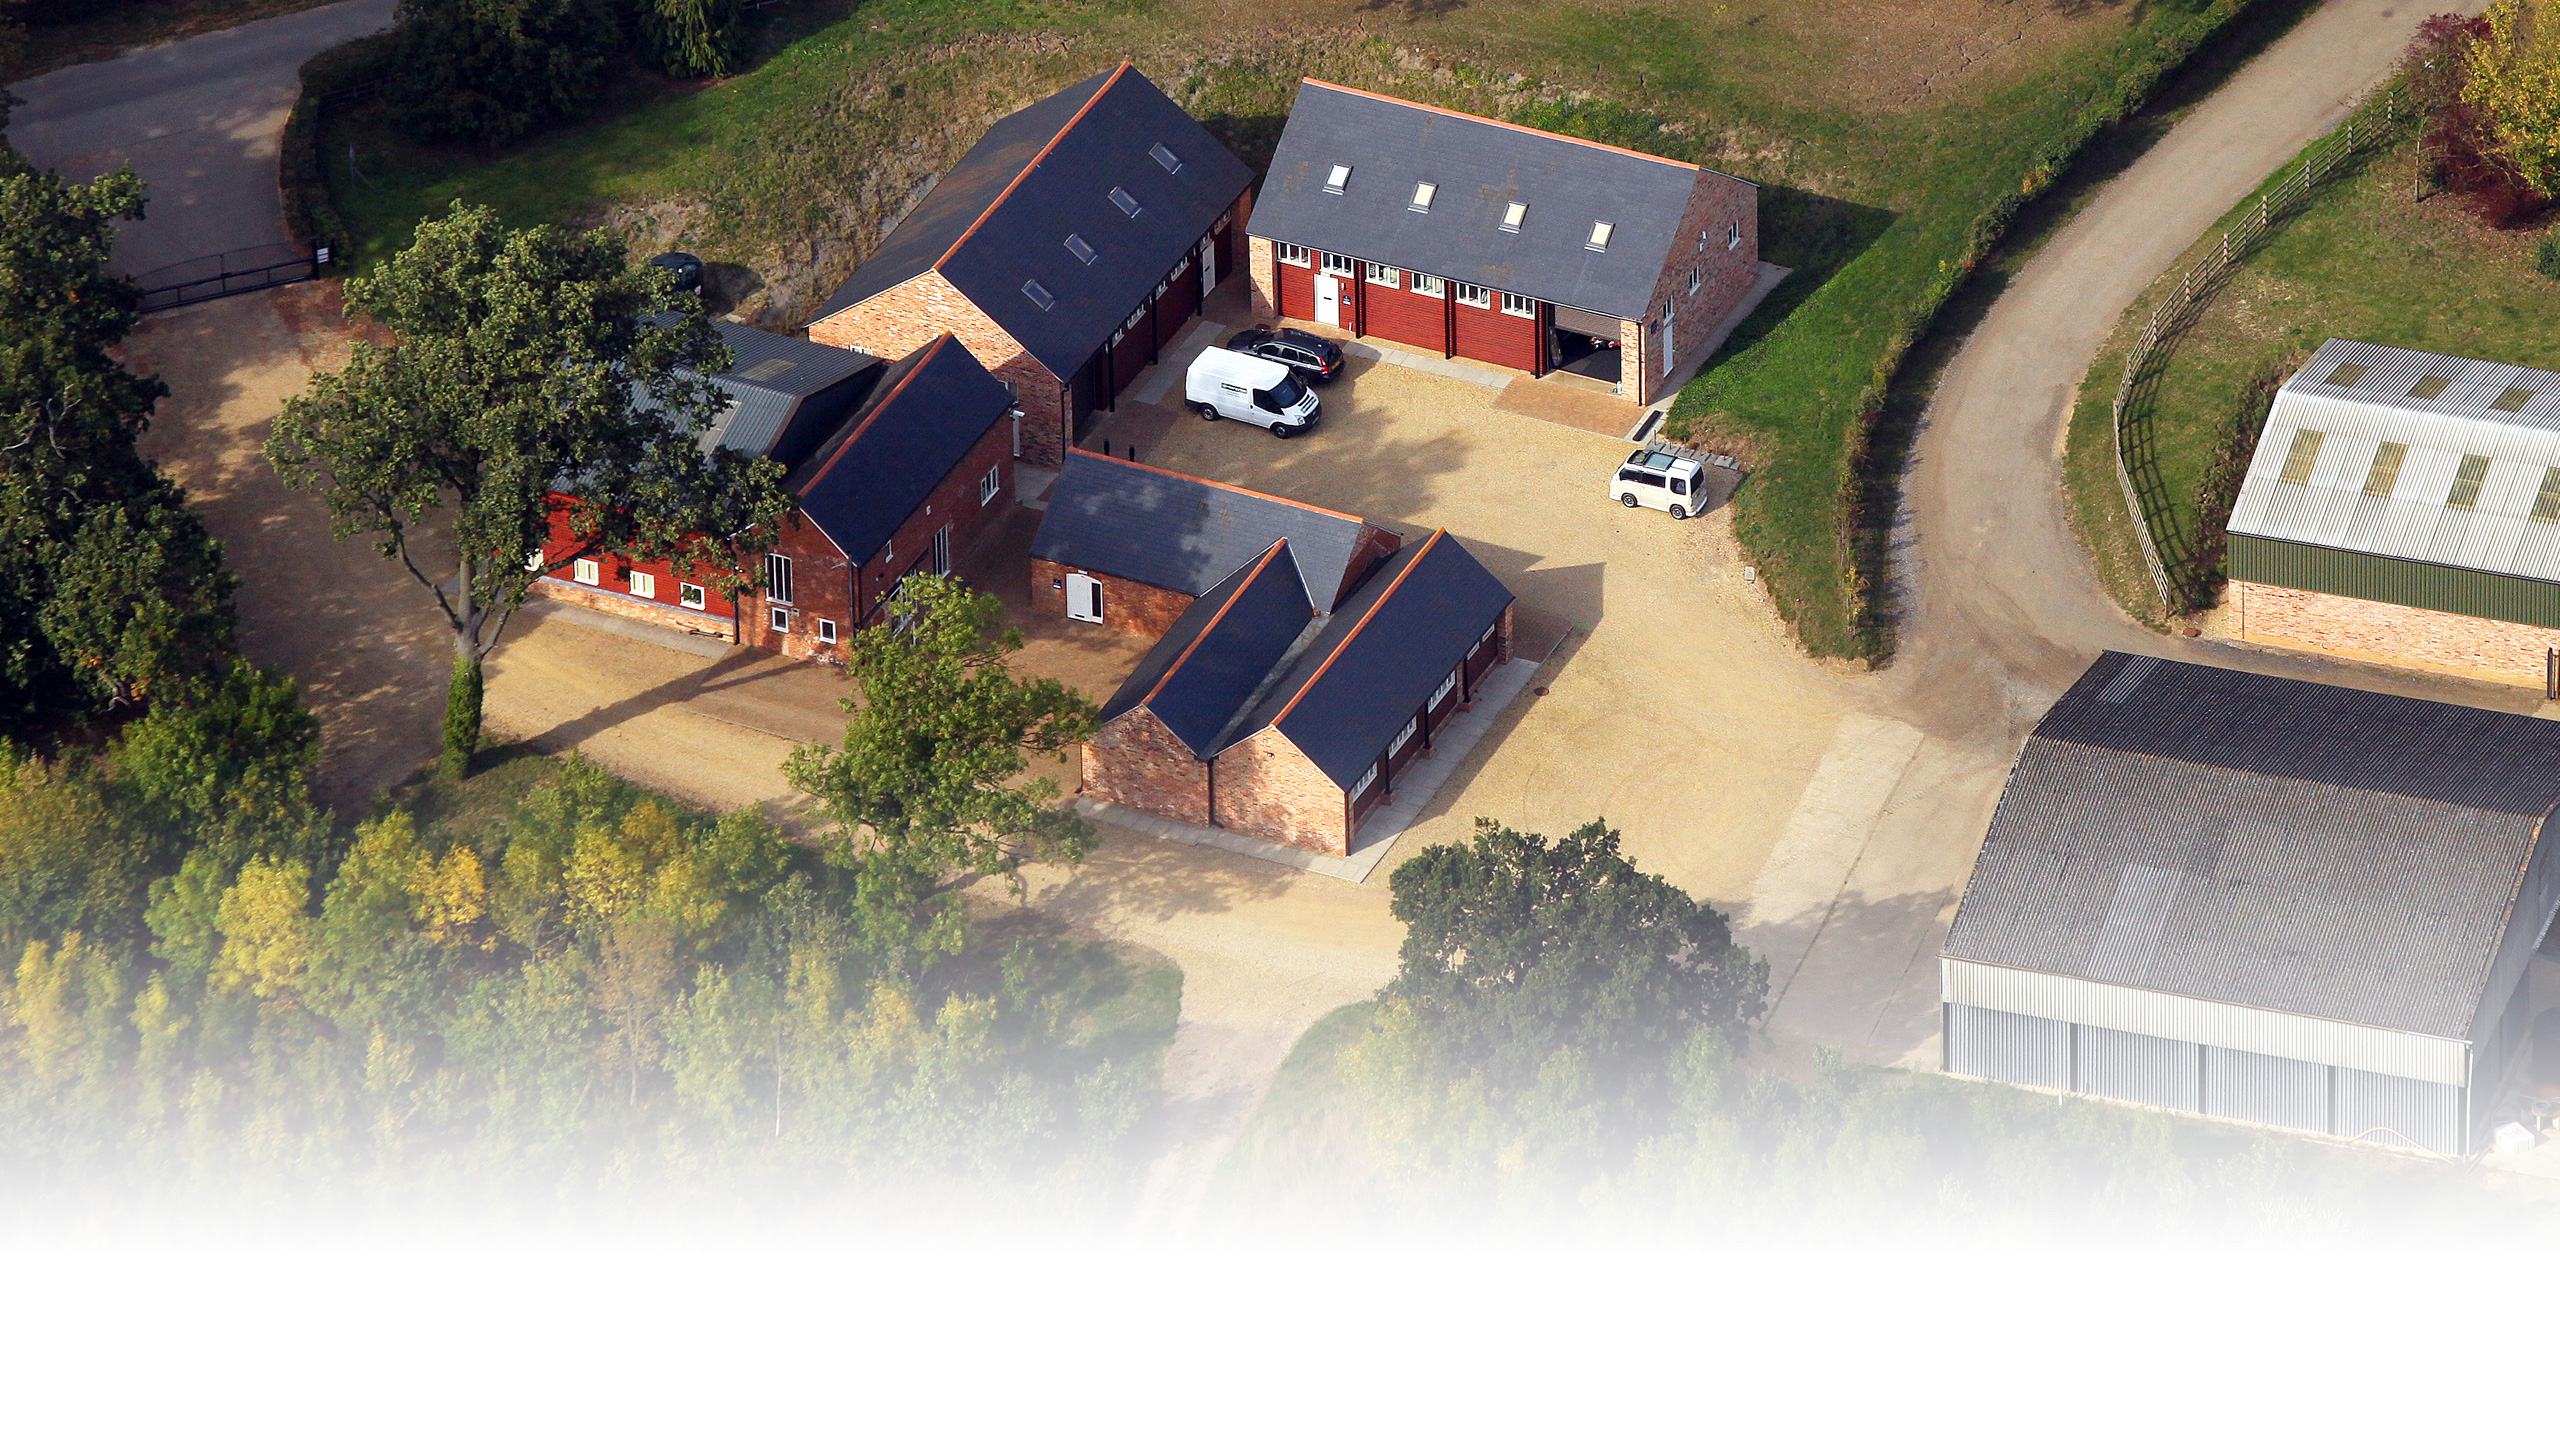 Lyndon Barns Commercial Property Site Aerial View